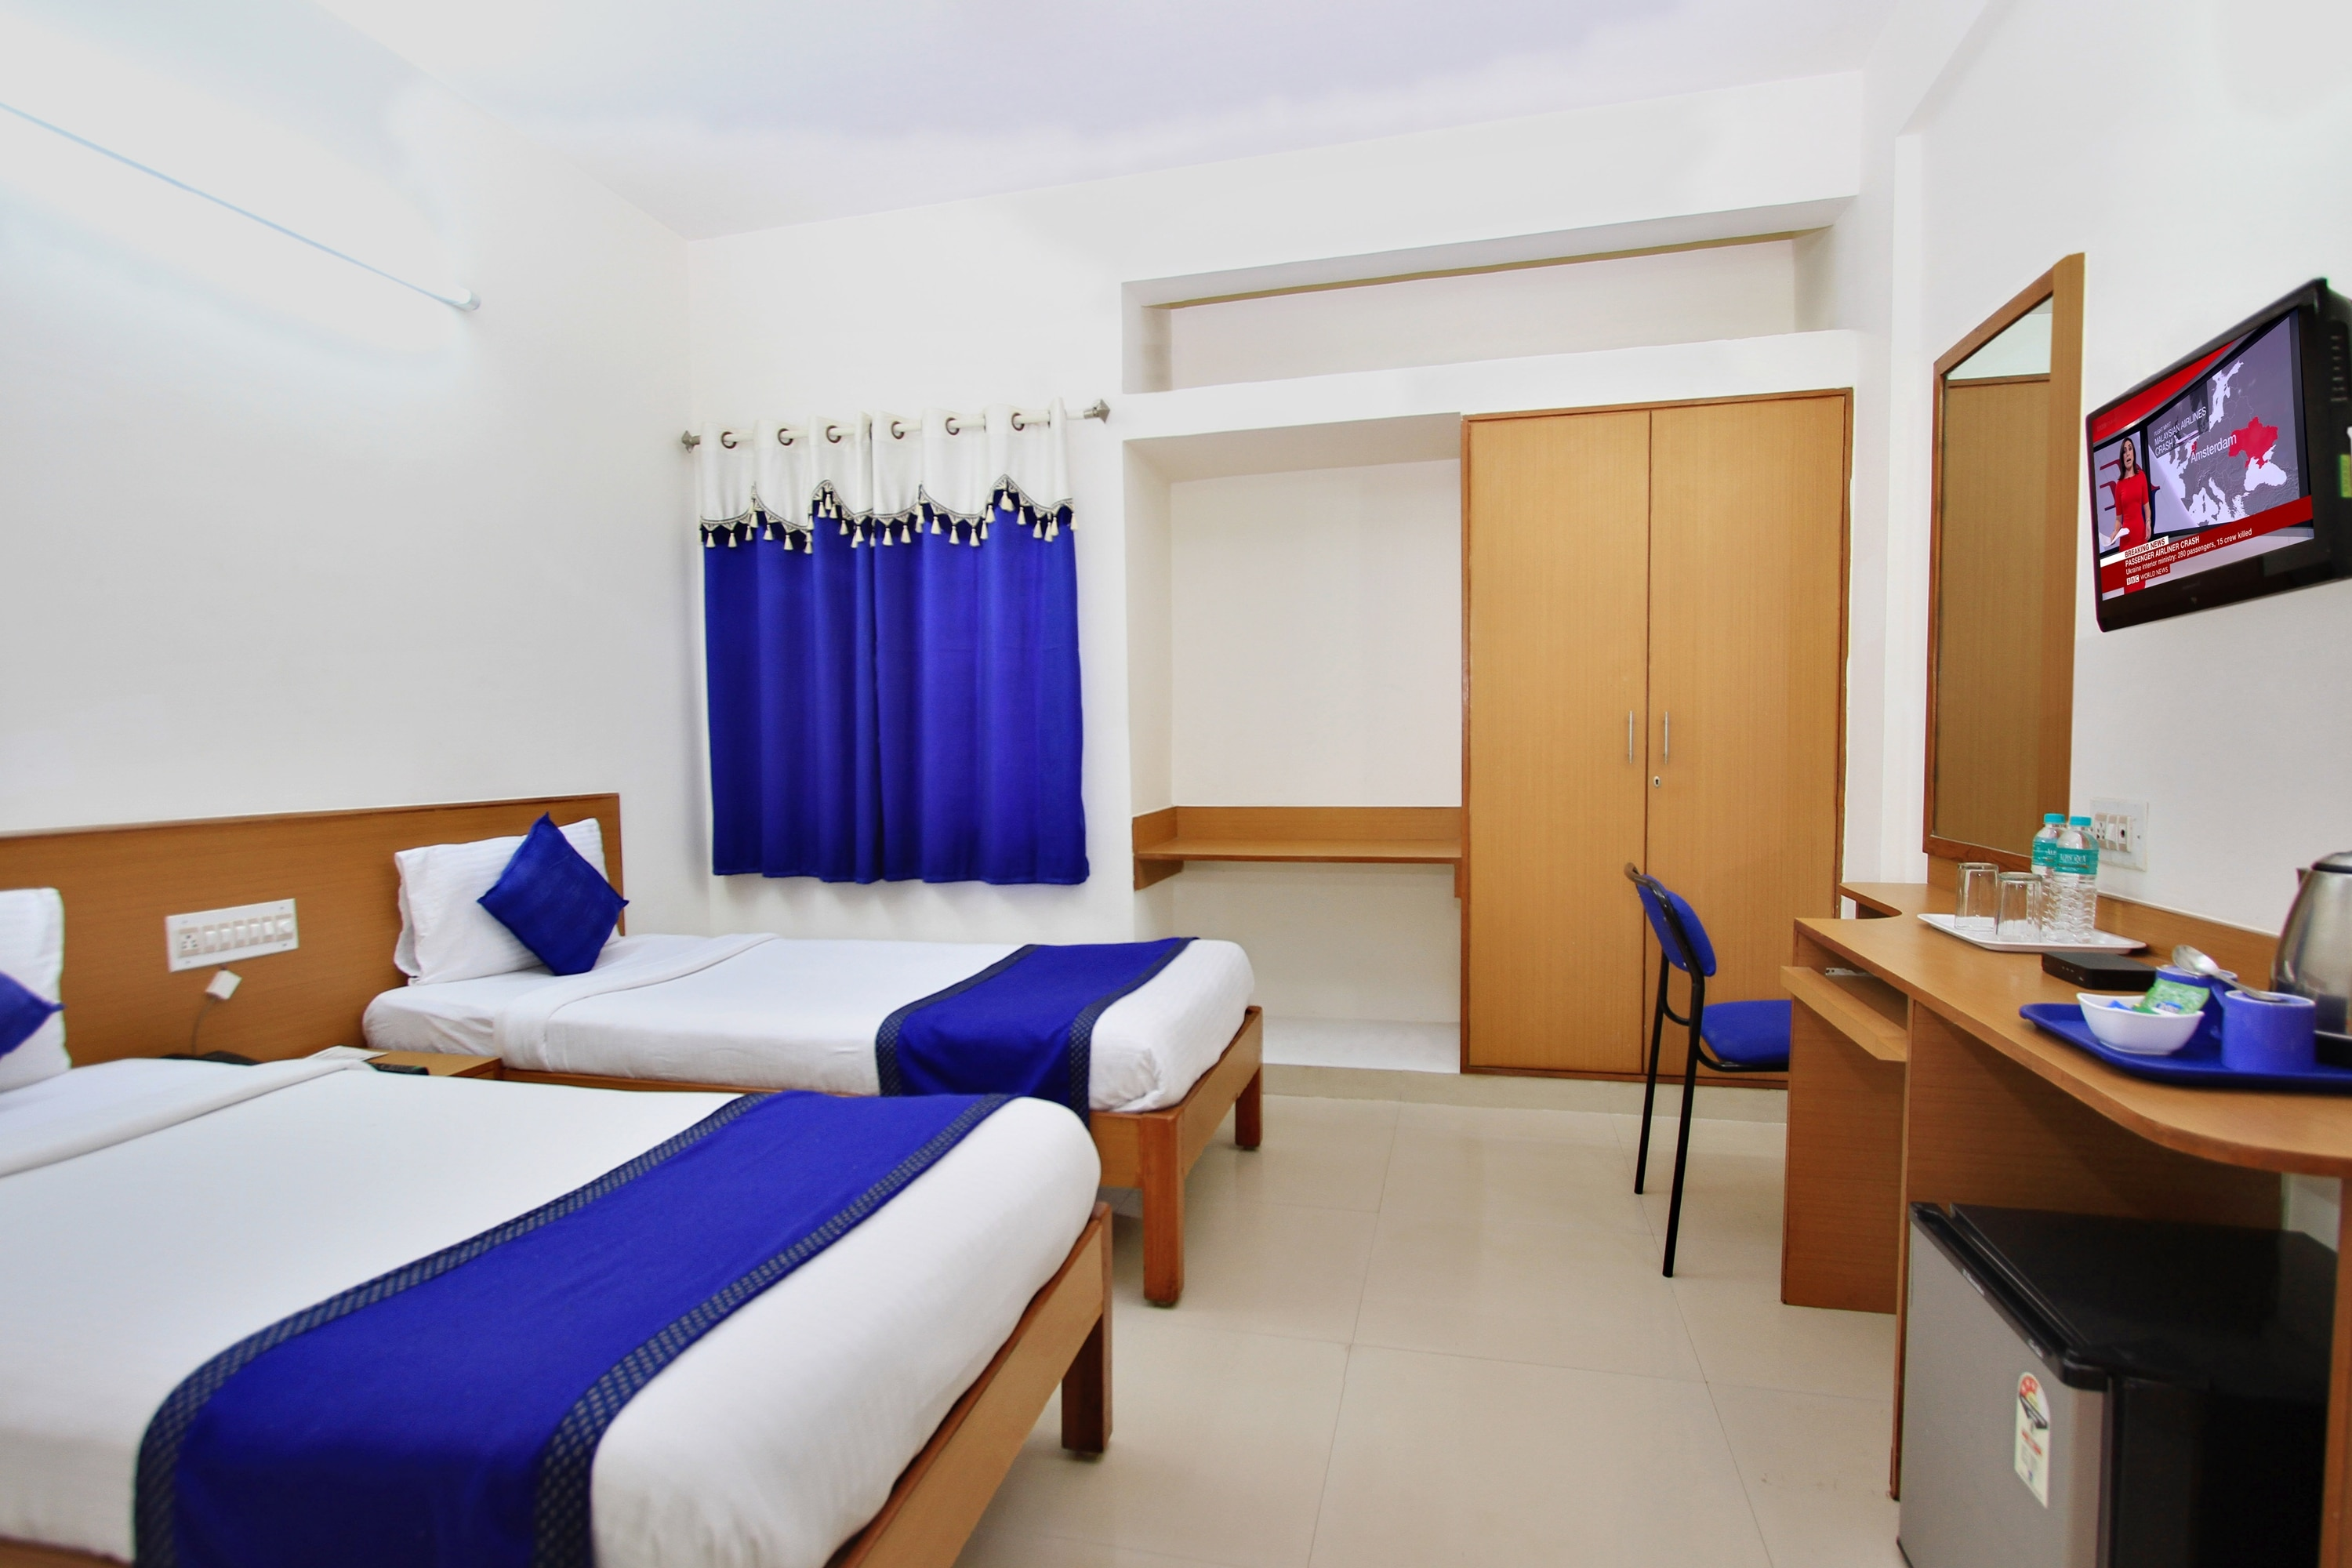 Feel Free to call arra suites, If you are hunting for hotels near kempegowda Airport international terminal. Free wifi and breakfast